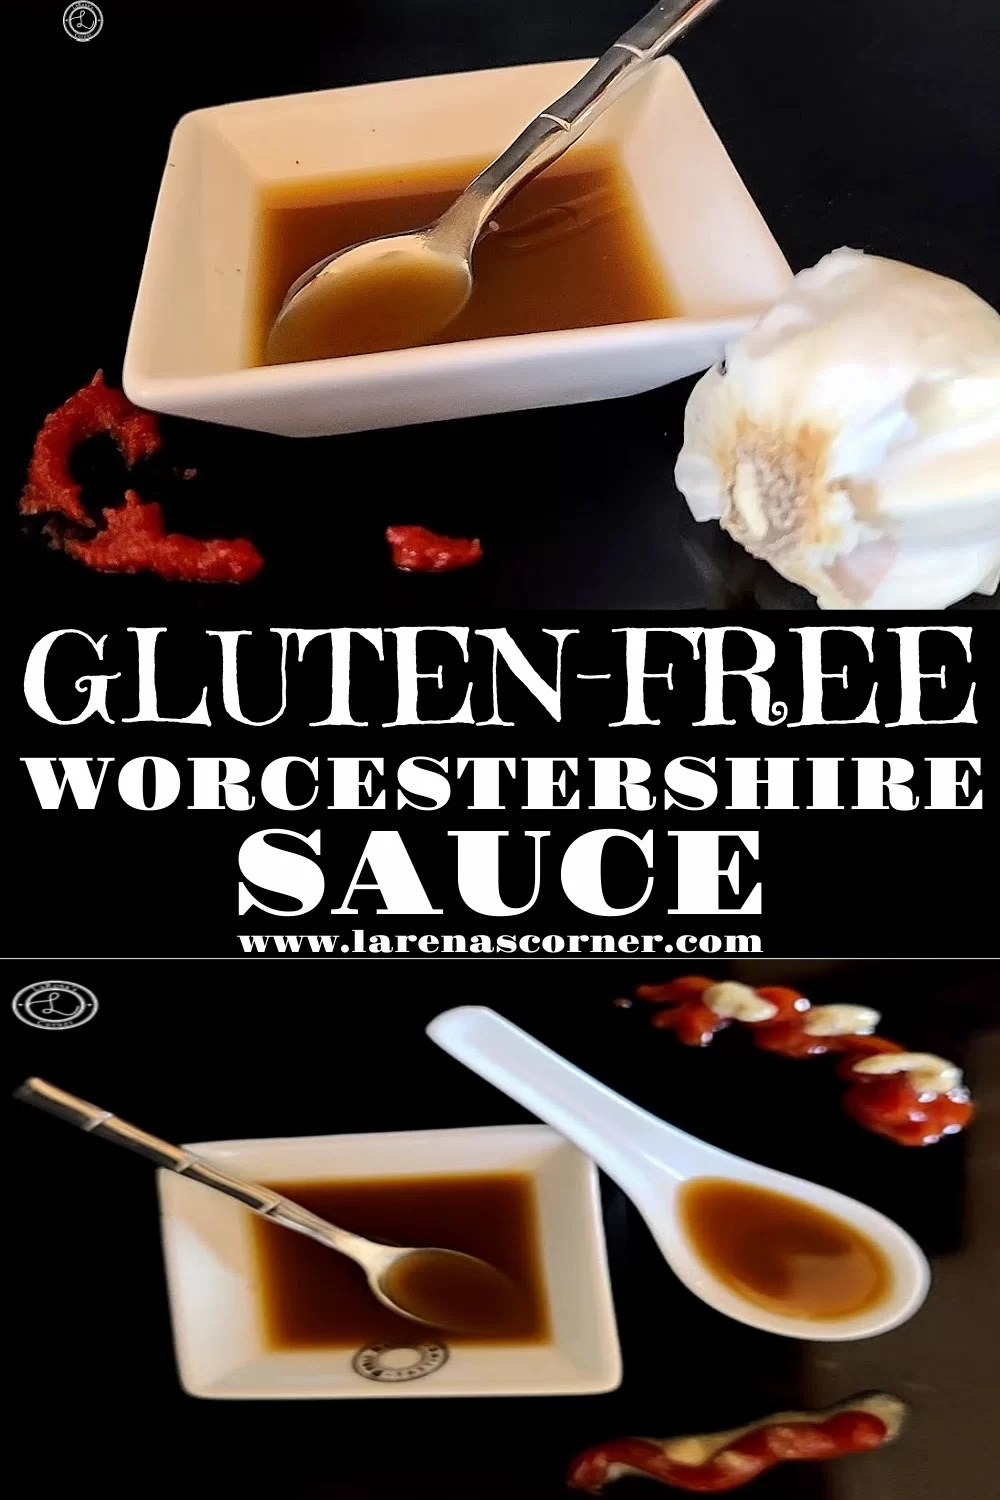 Gluten-Free AKA Worcestershire Sauce to add flavor to many dishes.